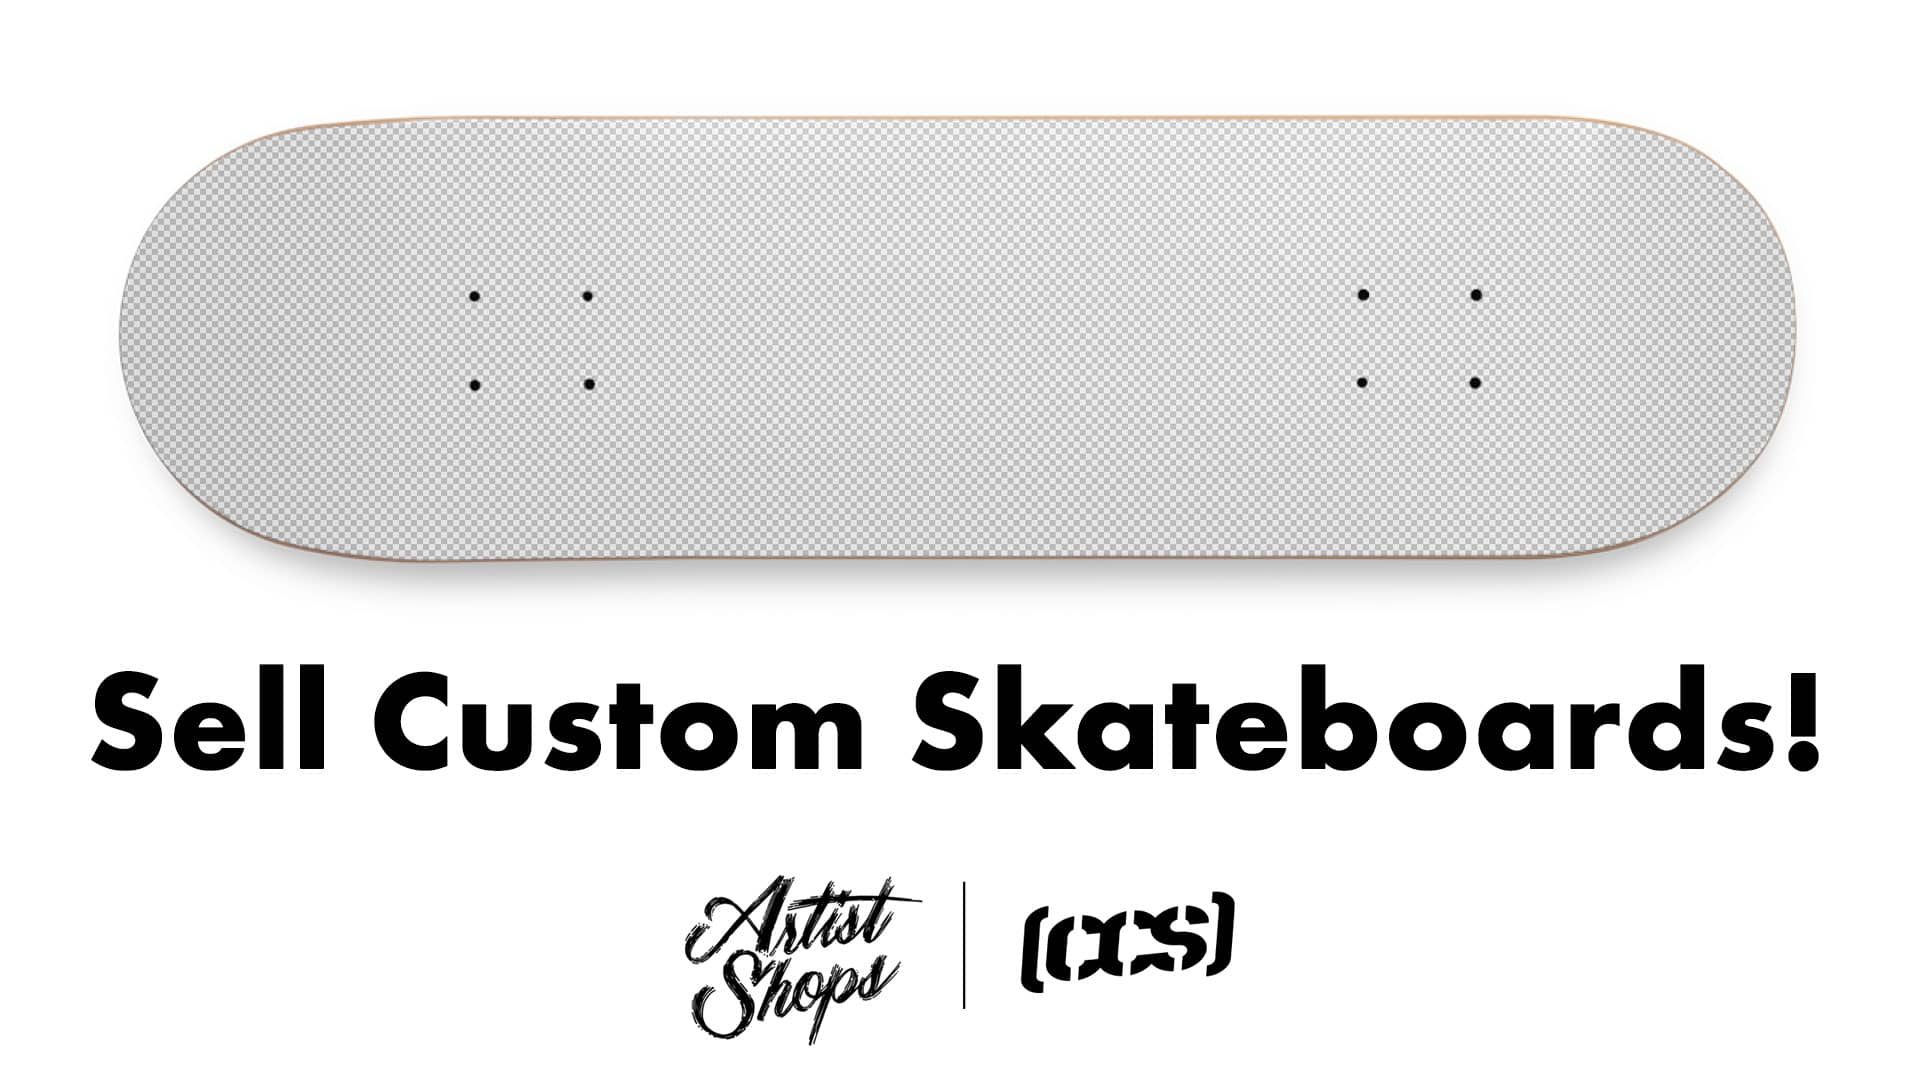 Sell Your Art on Custom CCS Skateboards With Artist Shops